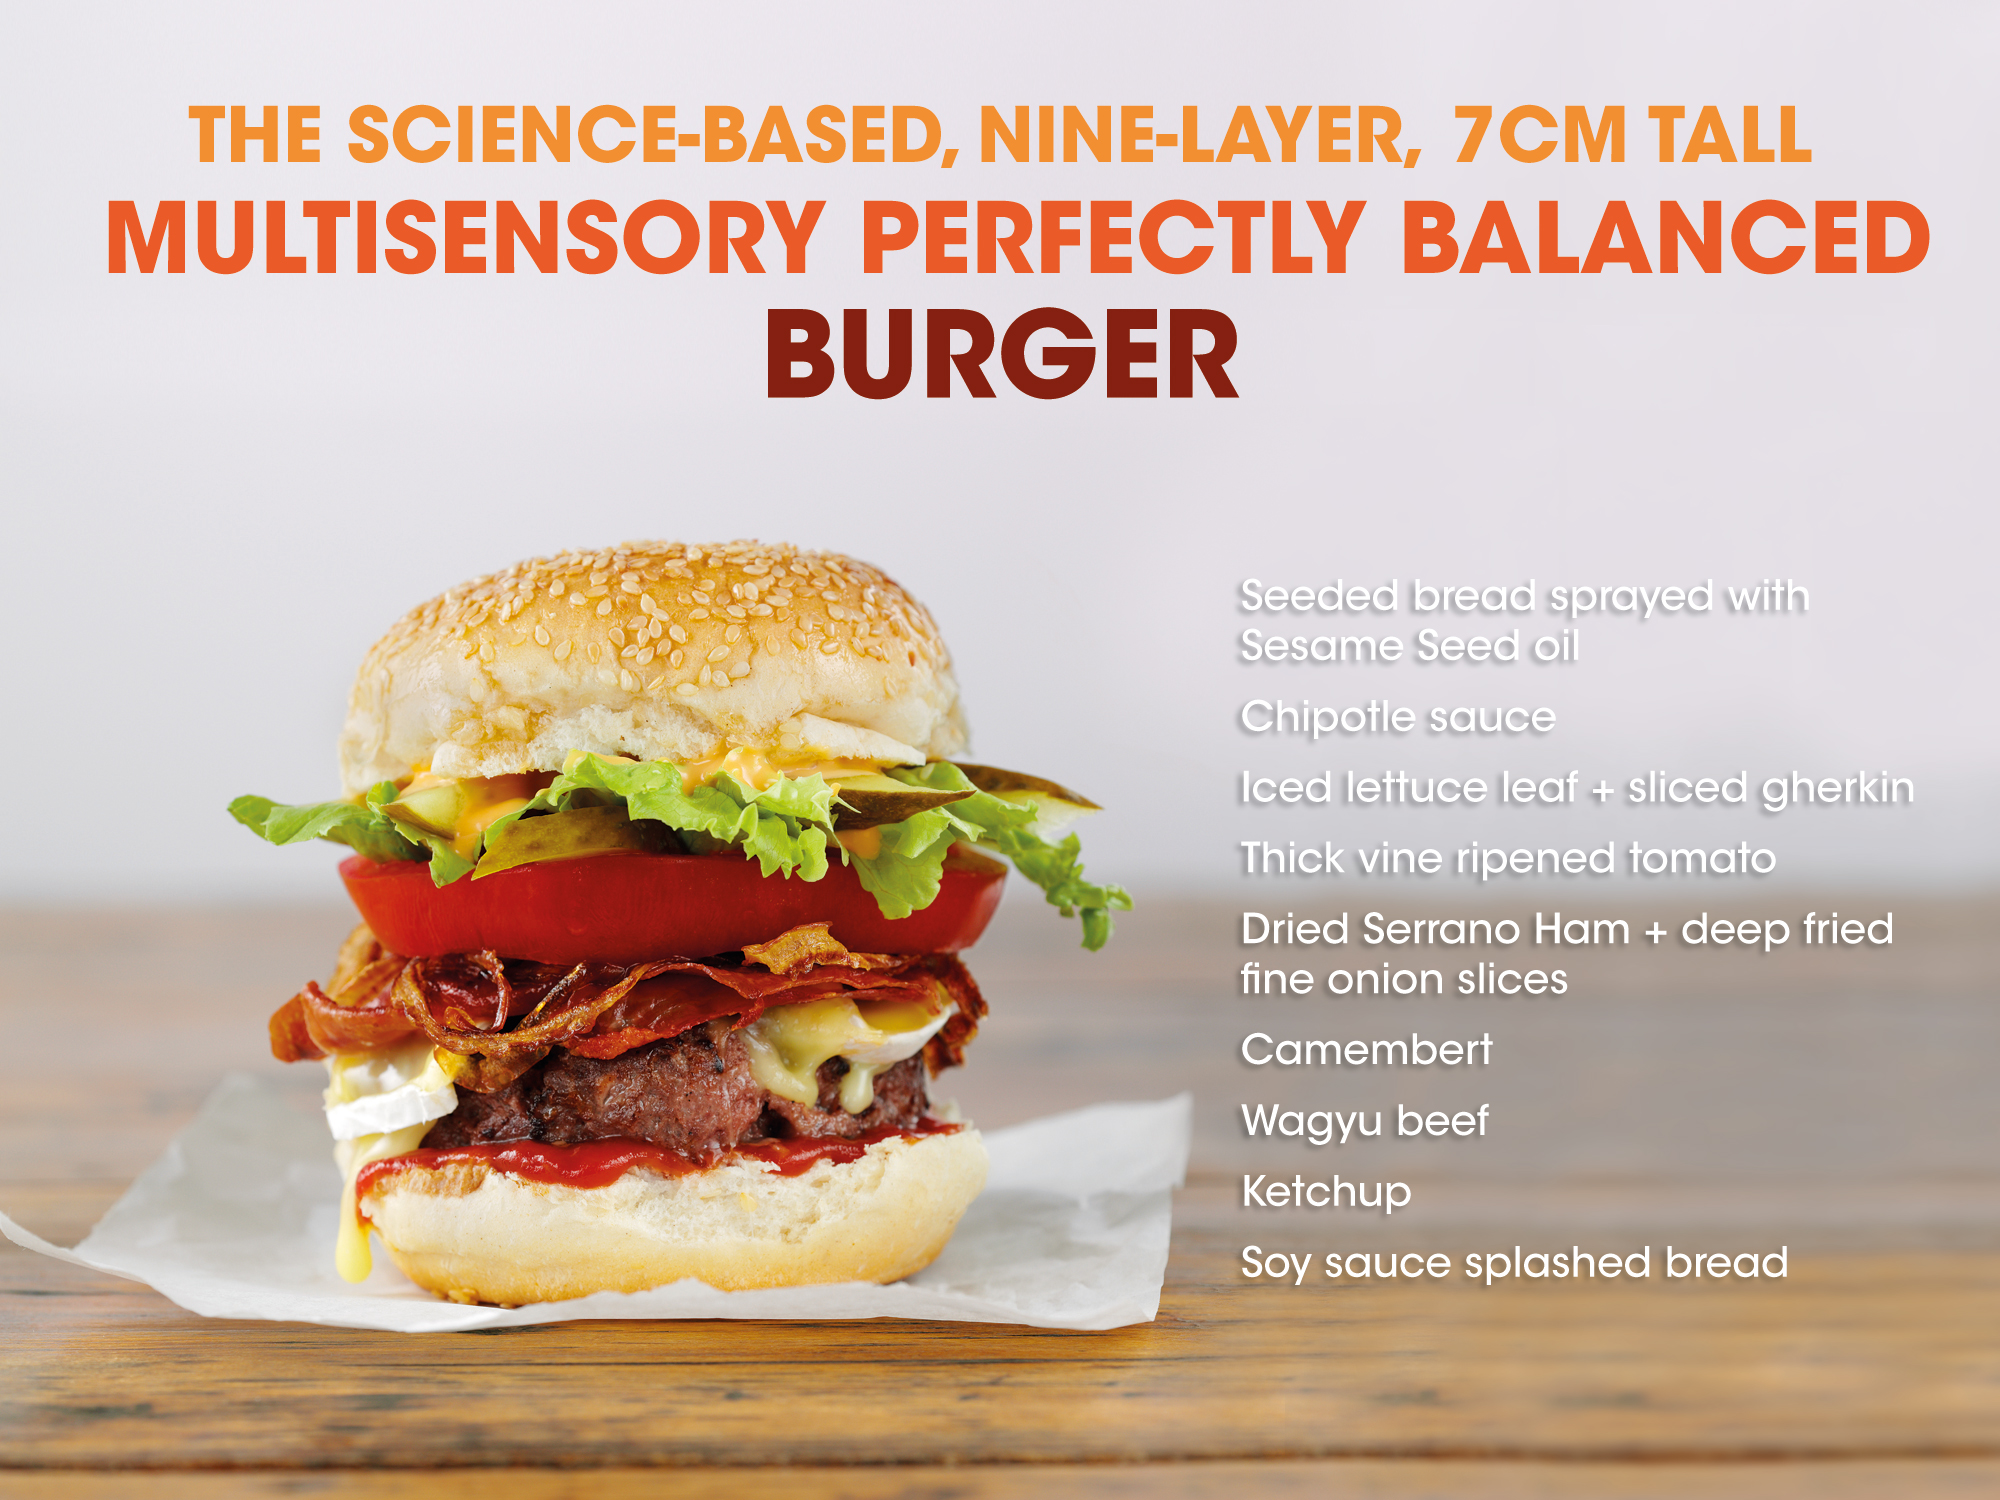 Asda - the perfect burger infographic